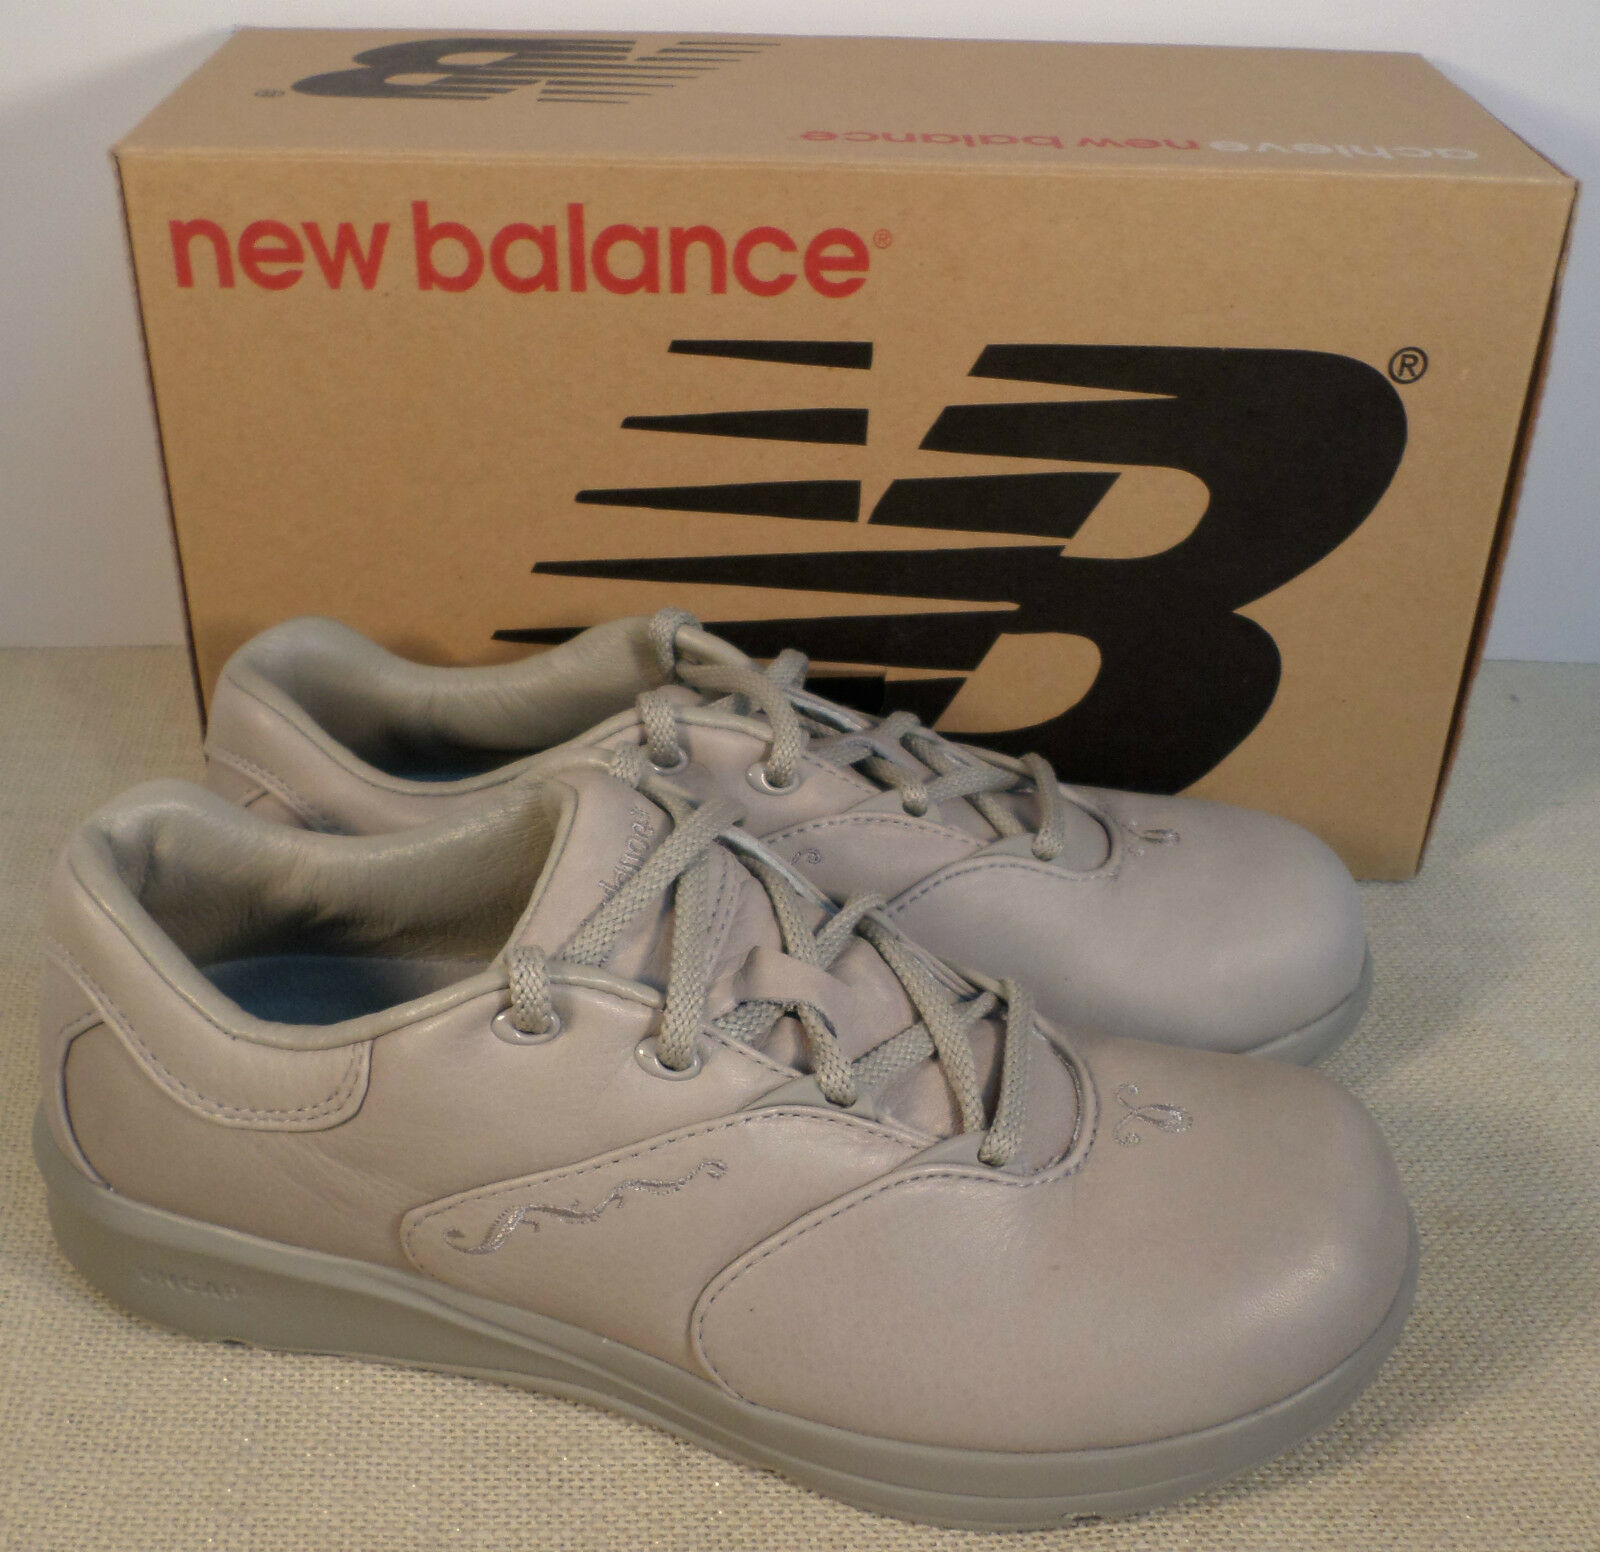 NEW BALANCE WW901ST WOMEN'S TAN LEATHER WALKING SHOES NEW IN BOX